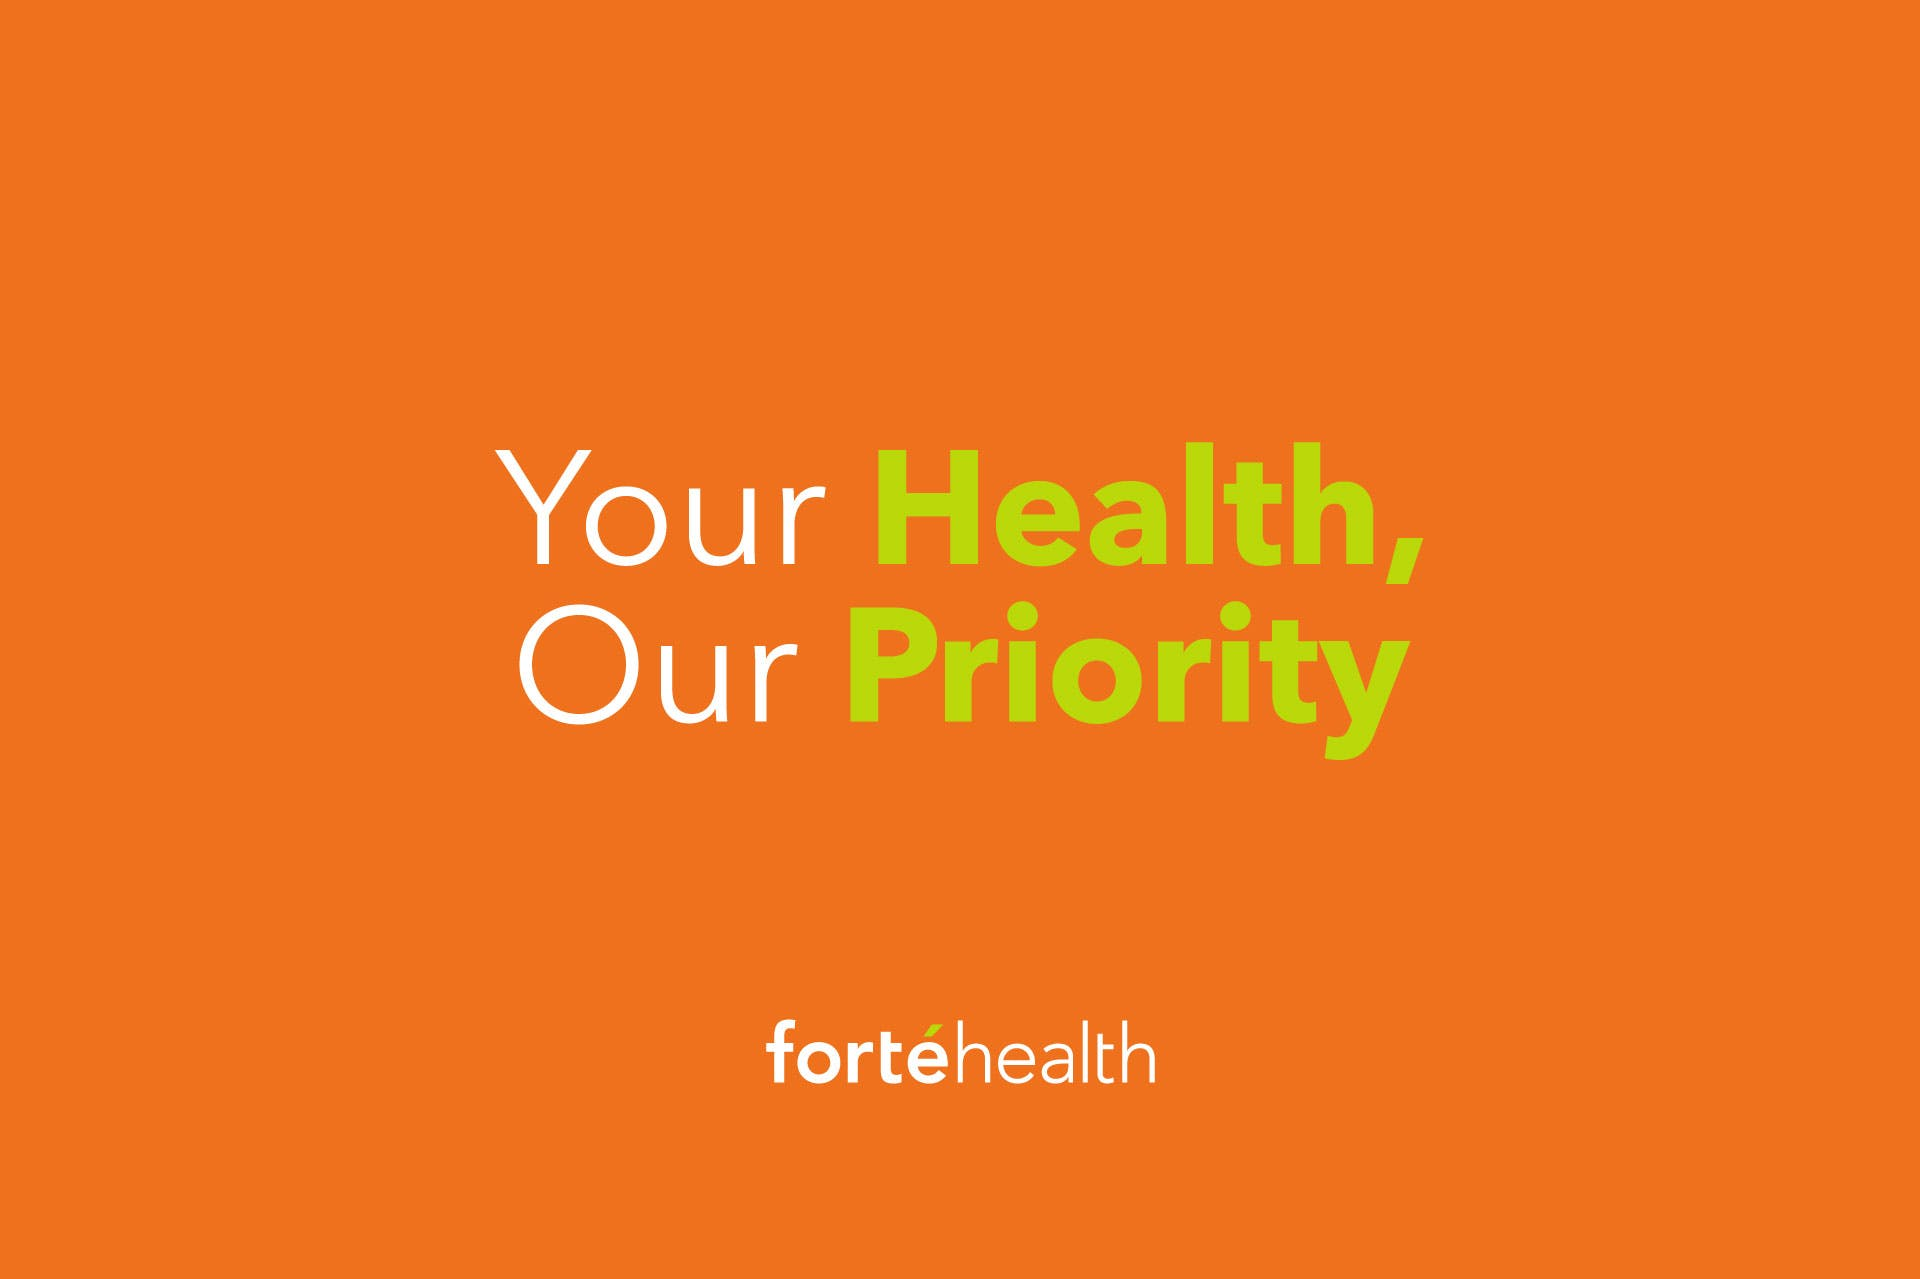 Your Health, Our Priority